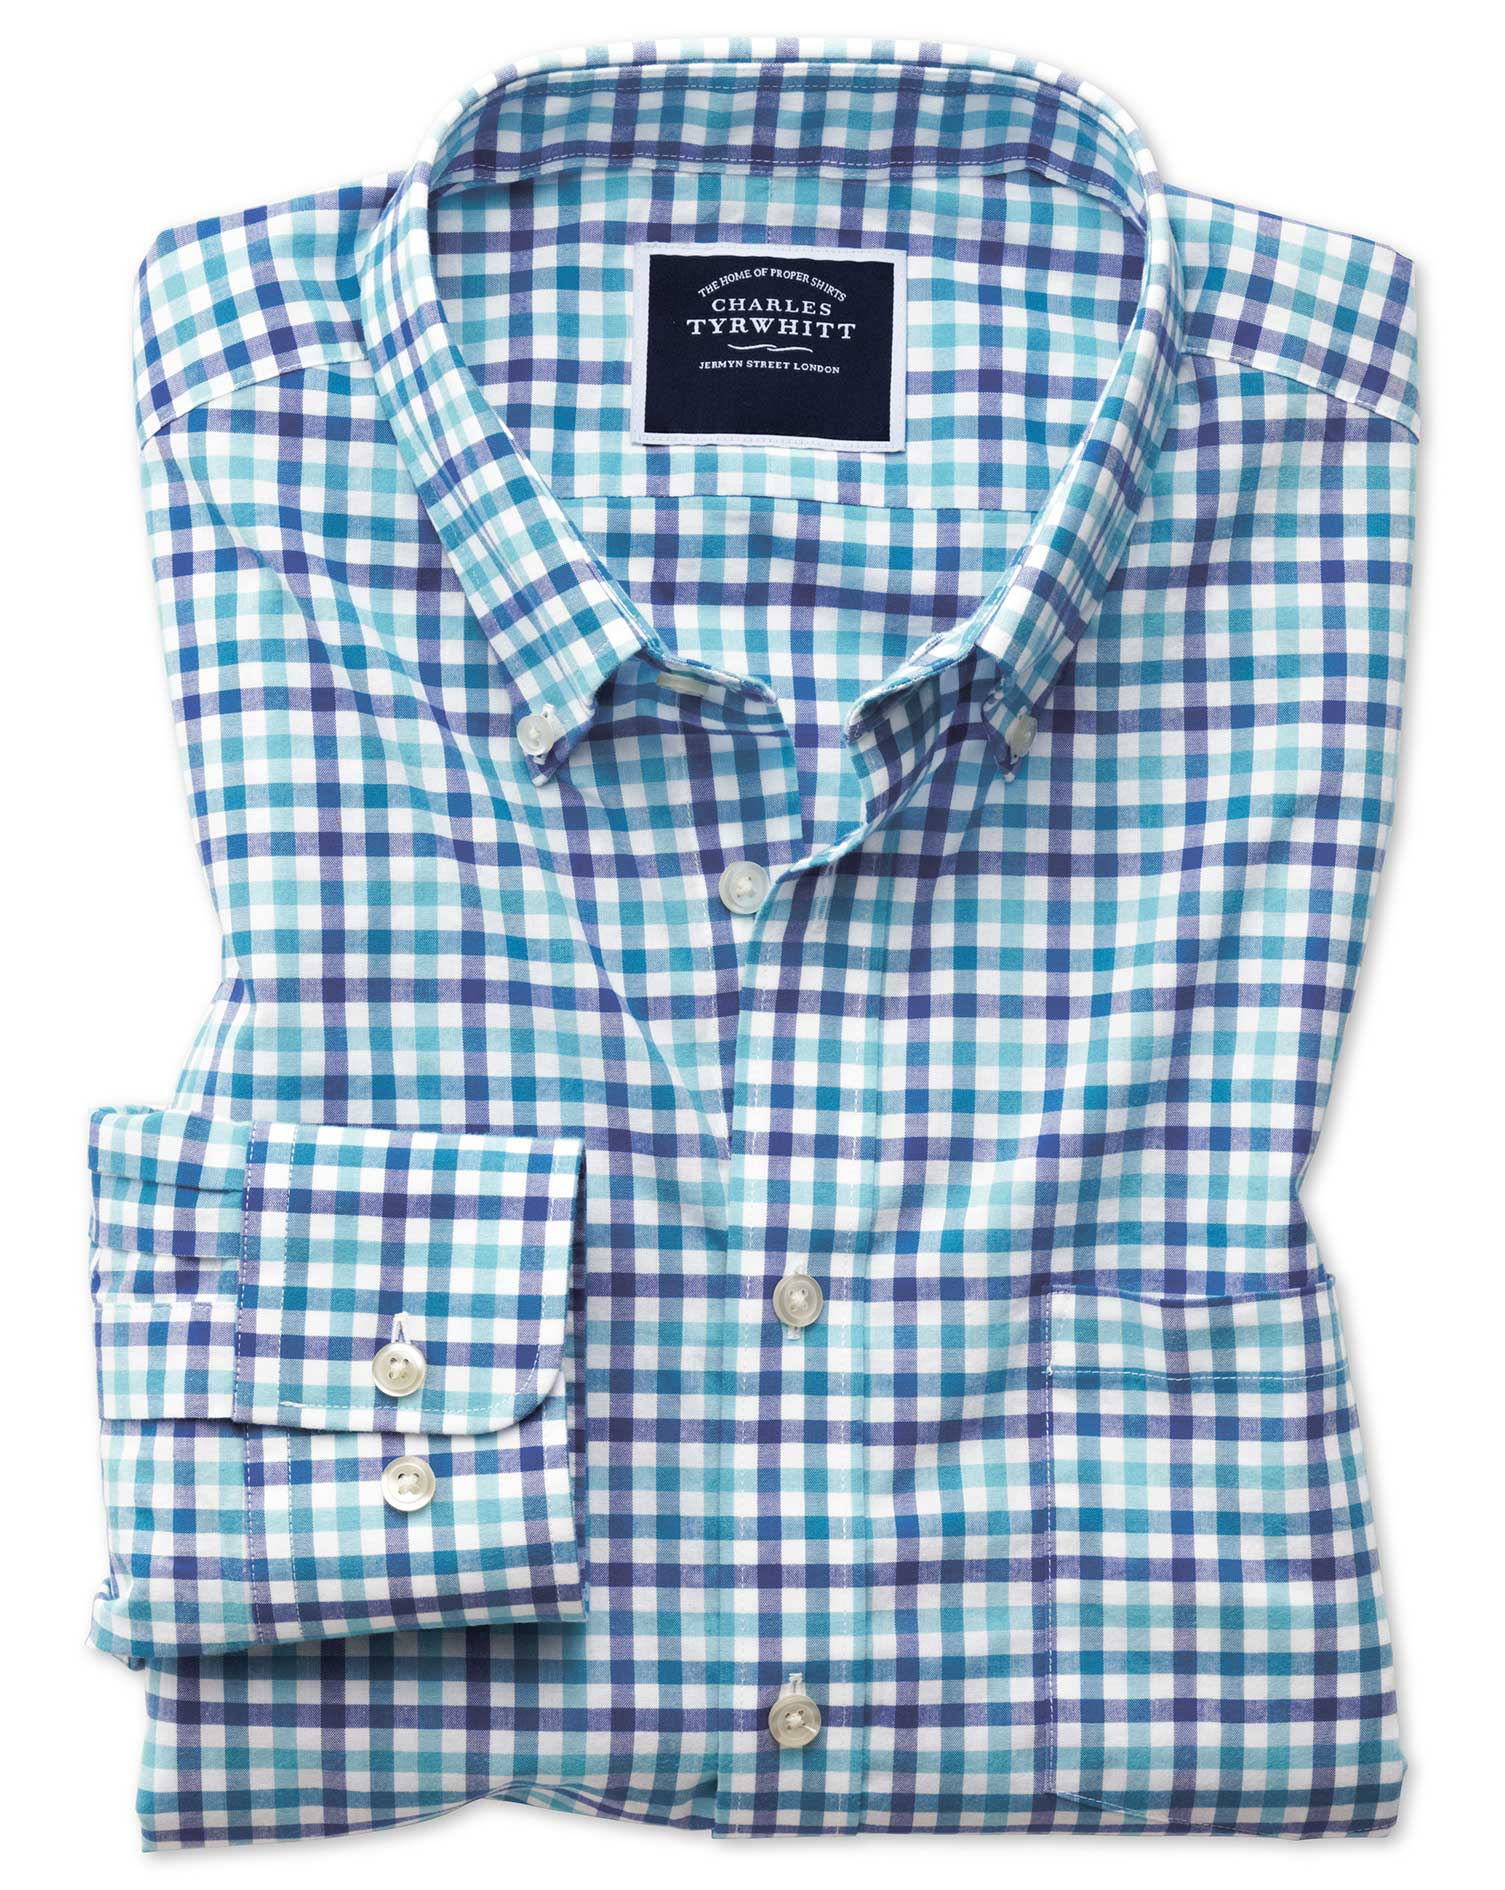 Classic Fit Poplin Blue Multi Gingham Cotton Shirt Single Cuff Size Small by Charles Tyrwhitt